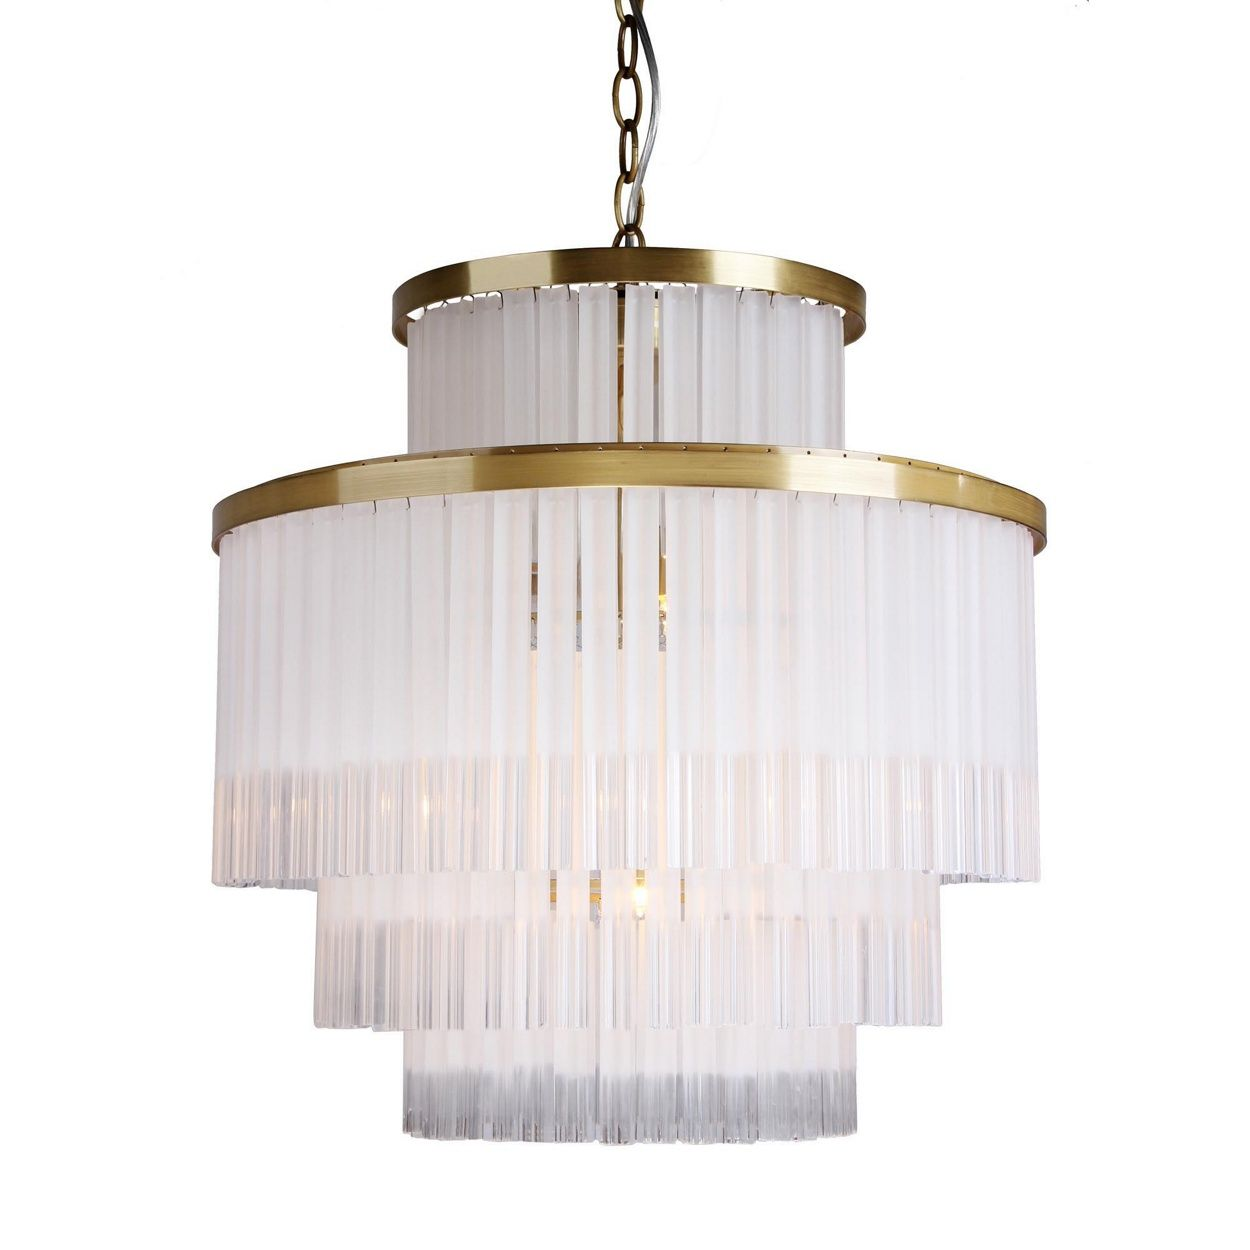 Awesome Hanging From A Gold Coloured Frame, It Features Tiered Glass Bars With A  Combination Of Clear And Frosted Finishes. Ideal For The Dining Room Or  Lounge, ... Amazing Ideas